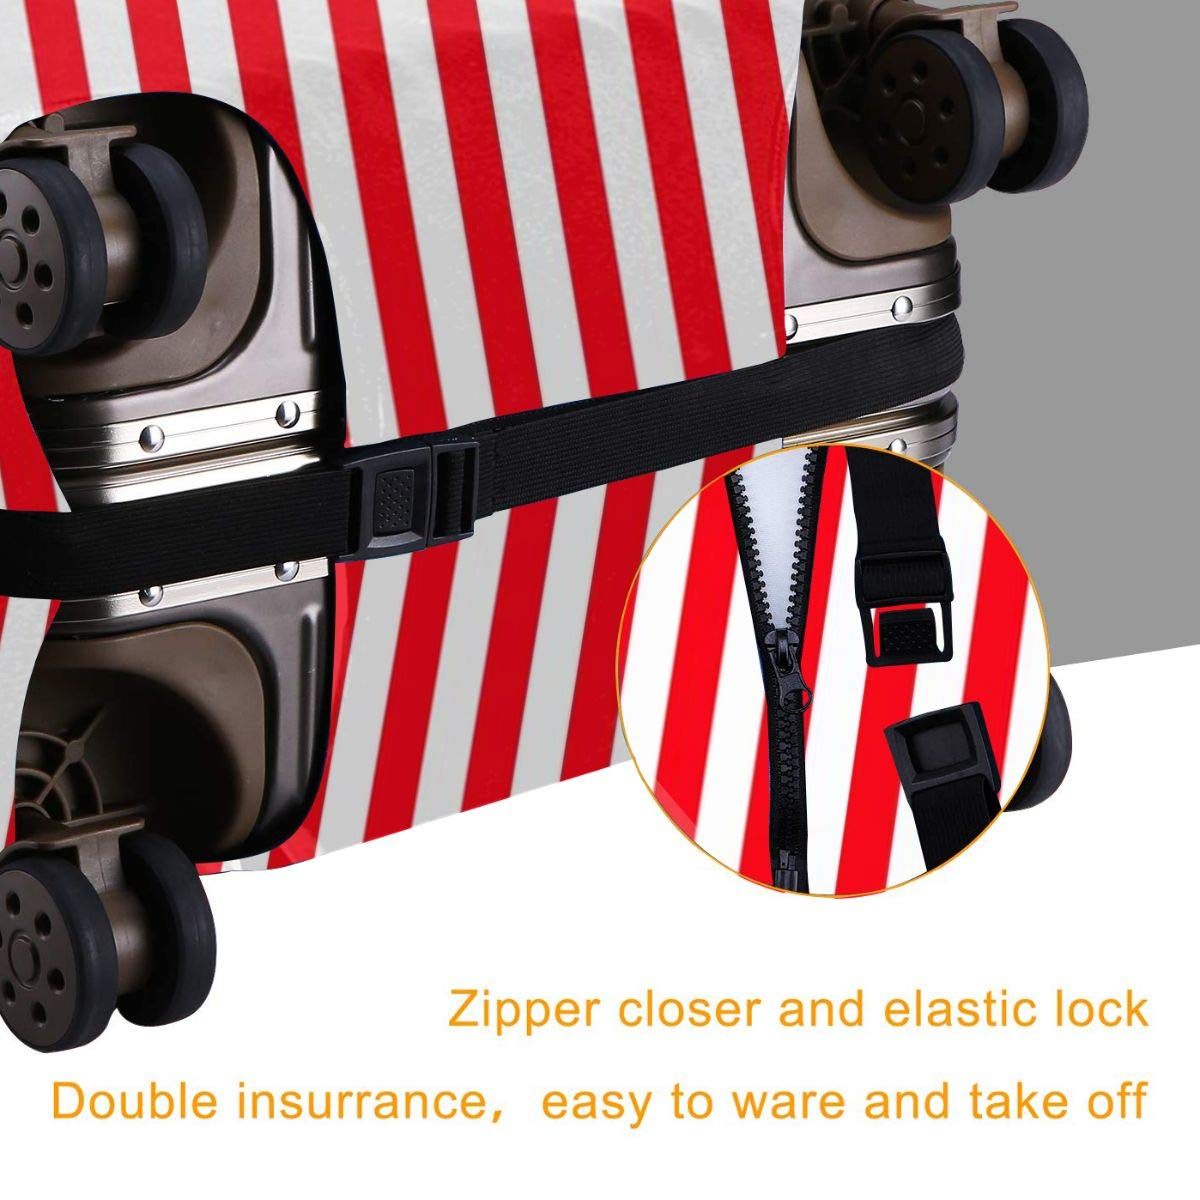 Red And White Stripes Elastic Travel Luggage Cover,Double Print Fashion Washable Suitcase Protective Cover Fits 18-32inch Luggage